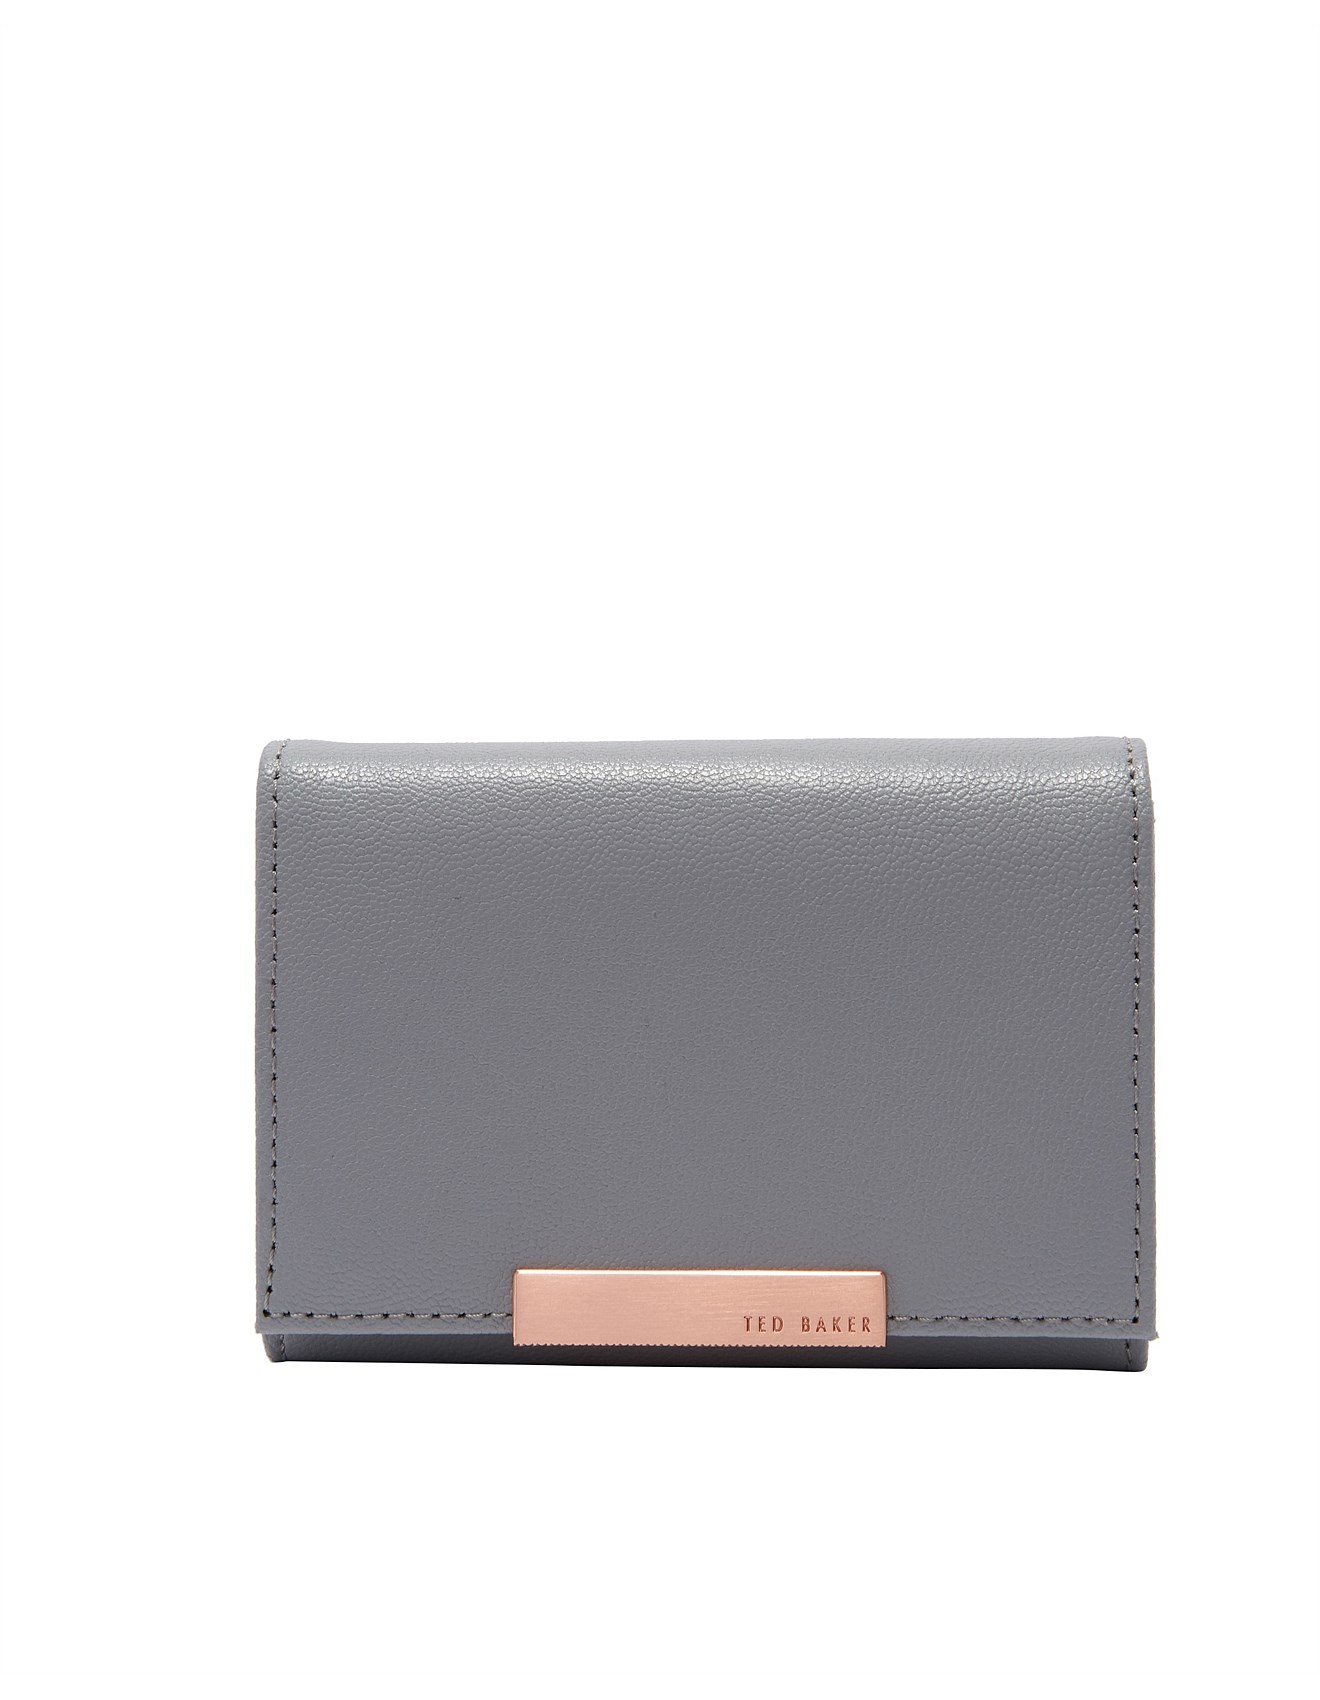 059d9529260 Ted Baker | Buy Ted Baker Clothing, Bags & More | David Jones - TEXTURED  MINI PURSE